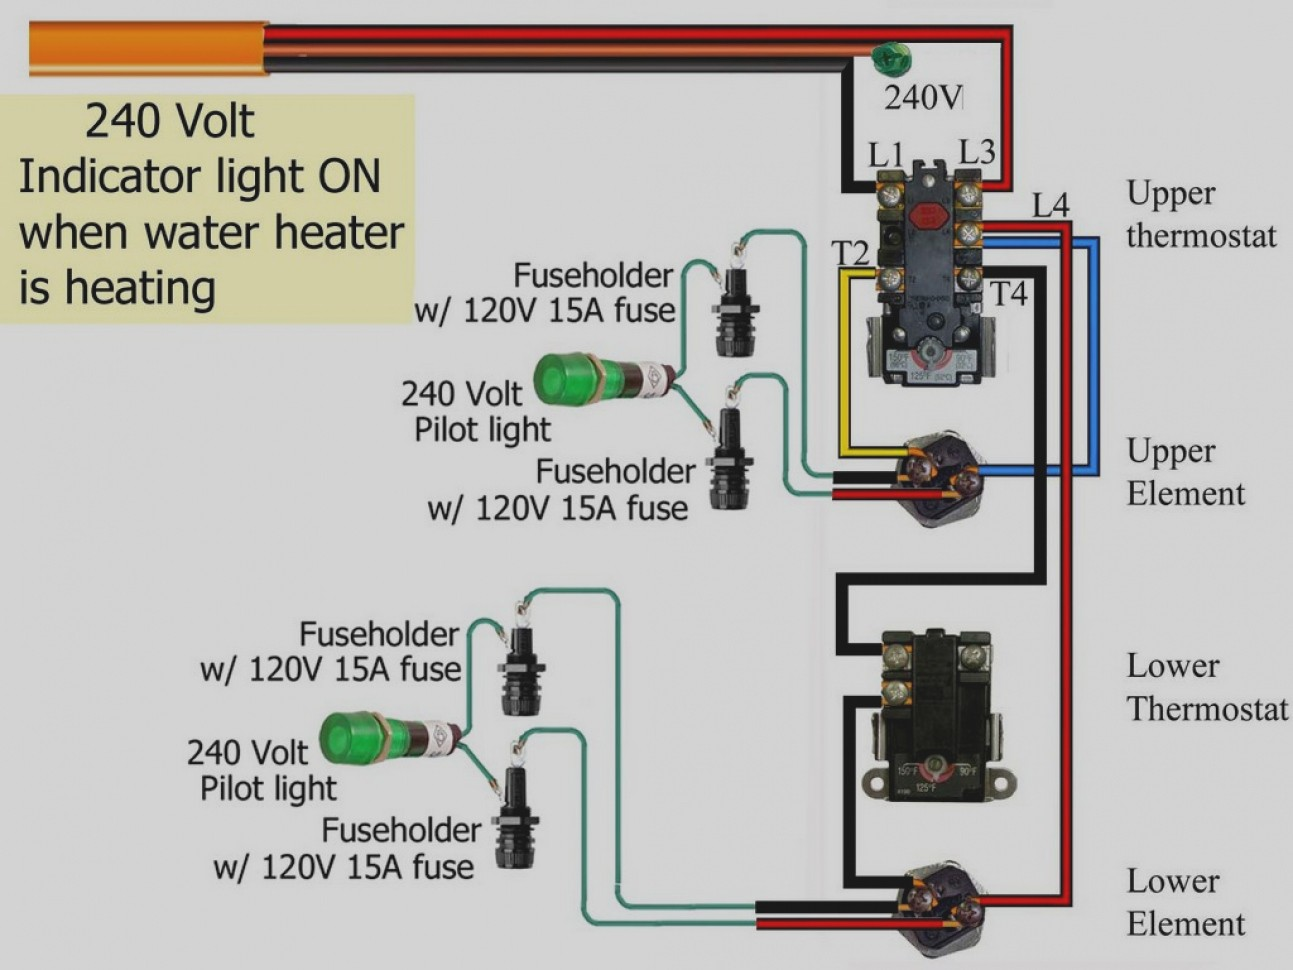 120 volt thermostat wiring diagram for trailer lights and electric brakes 240 heater unique image